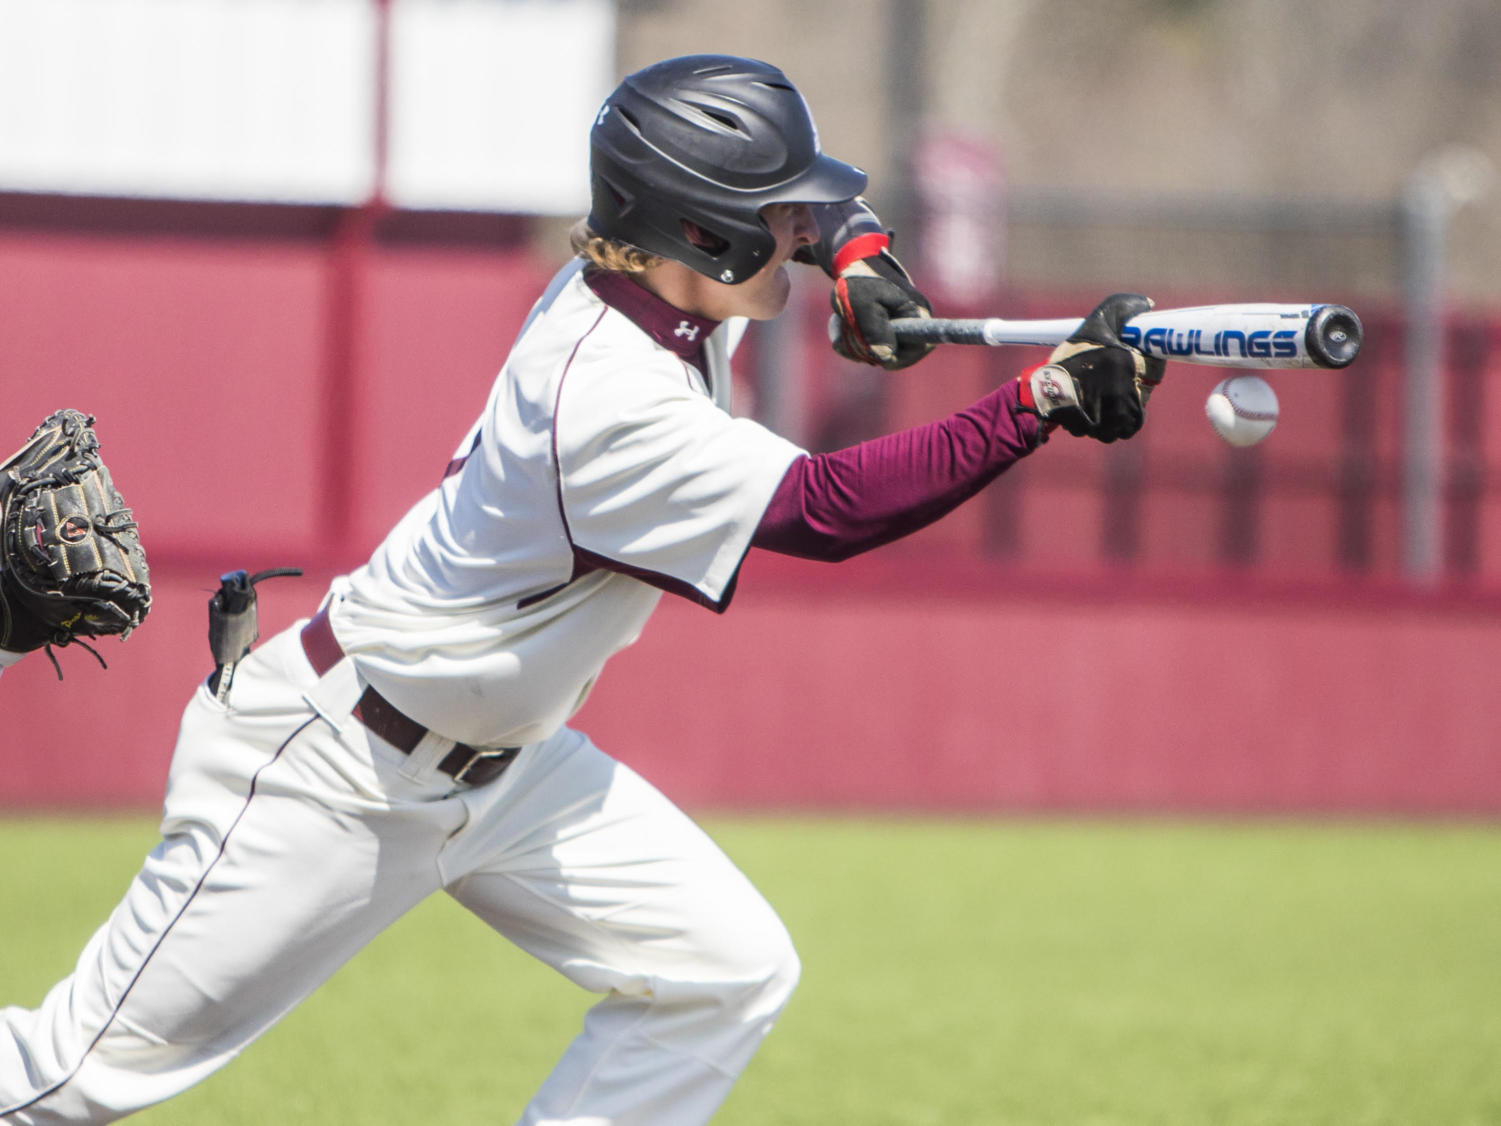 Southern Illinois infielder Connor Kopach (7) bunts the ball, Saturday, April 7, 2018, during the Valparaiso University Crusaders 6-2 victory against the Southern Illinois Salukis at Itchy Jones Stadium. (Corrin Hunt | @CorrinIHunt)